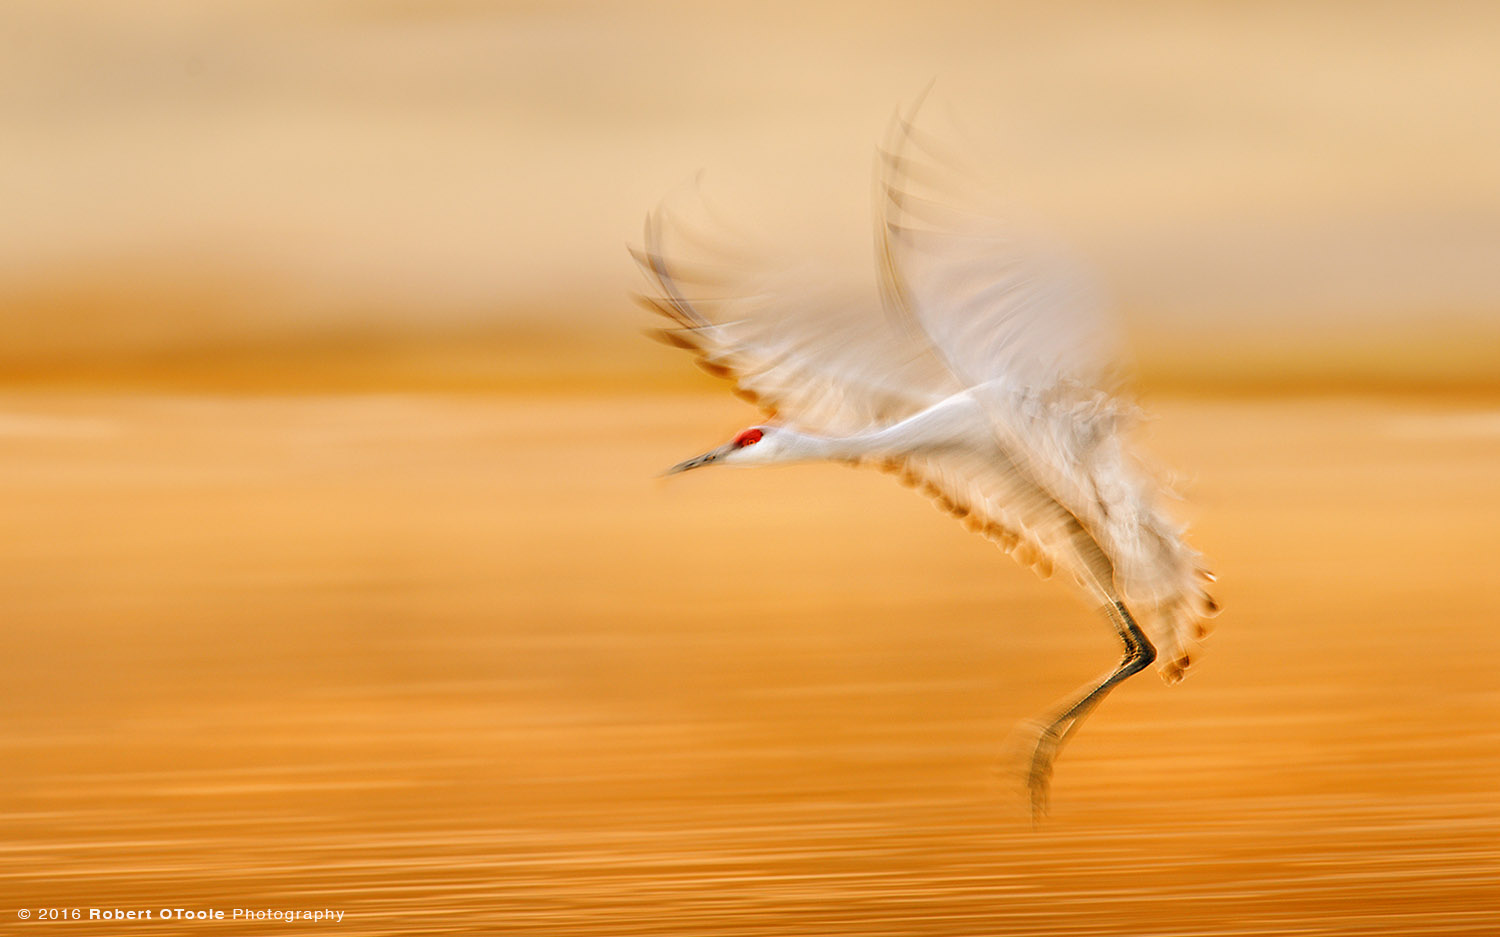 Sandhill Crane Landing at 1/20th s